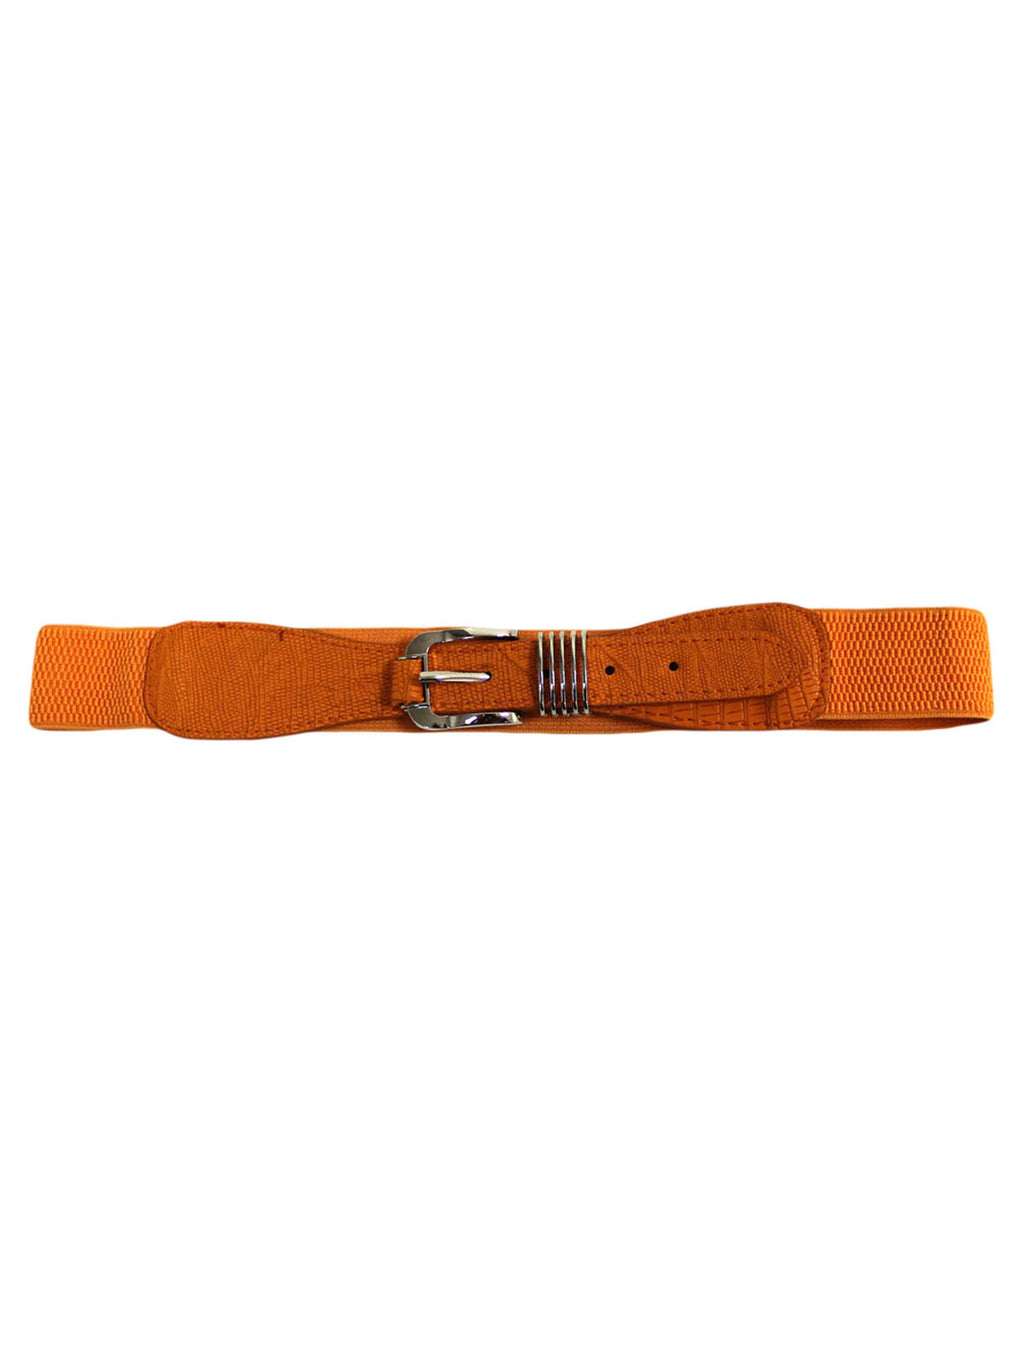 Thin Crocodile Textured Retro Buckle Stretch Belt